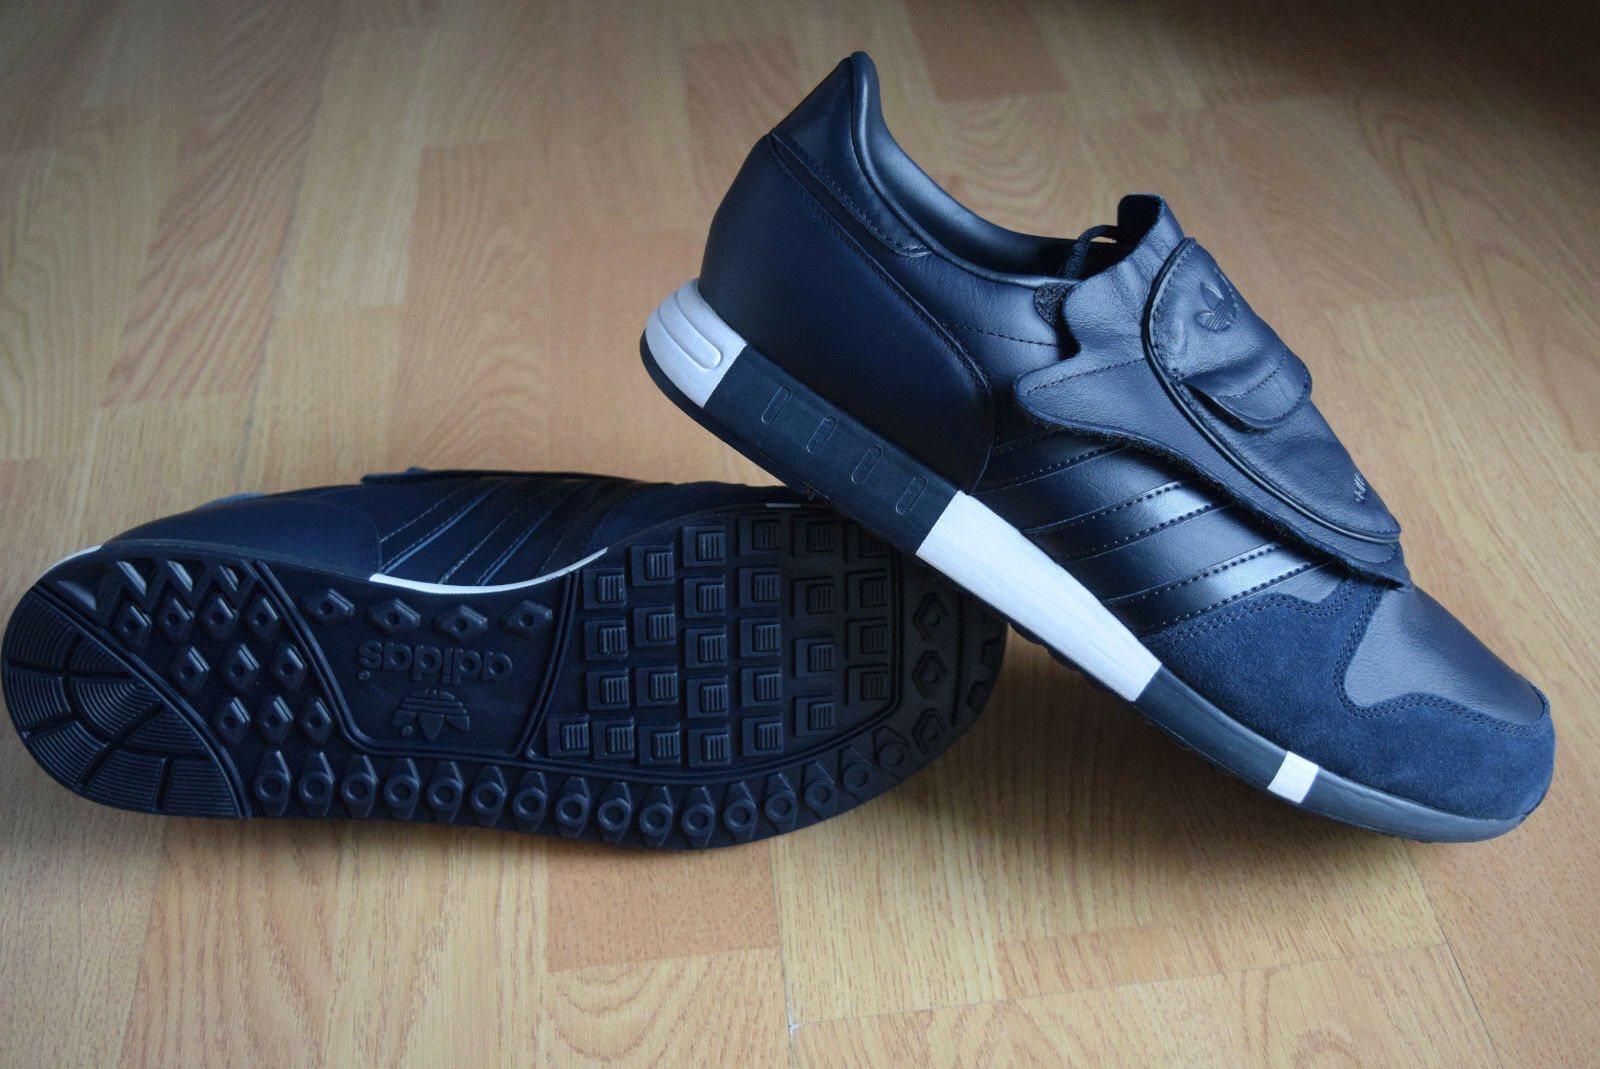 Adidas Micropacer AOH-006 44,5 46 47 47 47 by HYKE Nmd Yeezy Boston CONSORZIO S79348 37a000